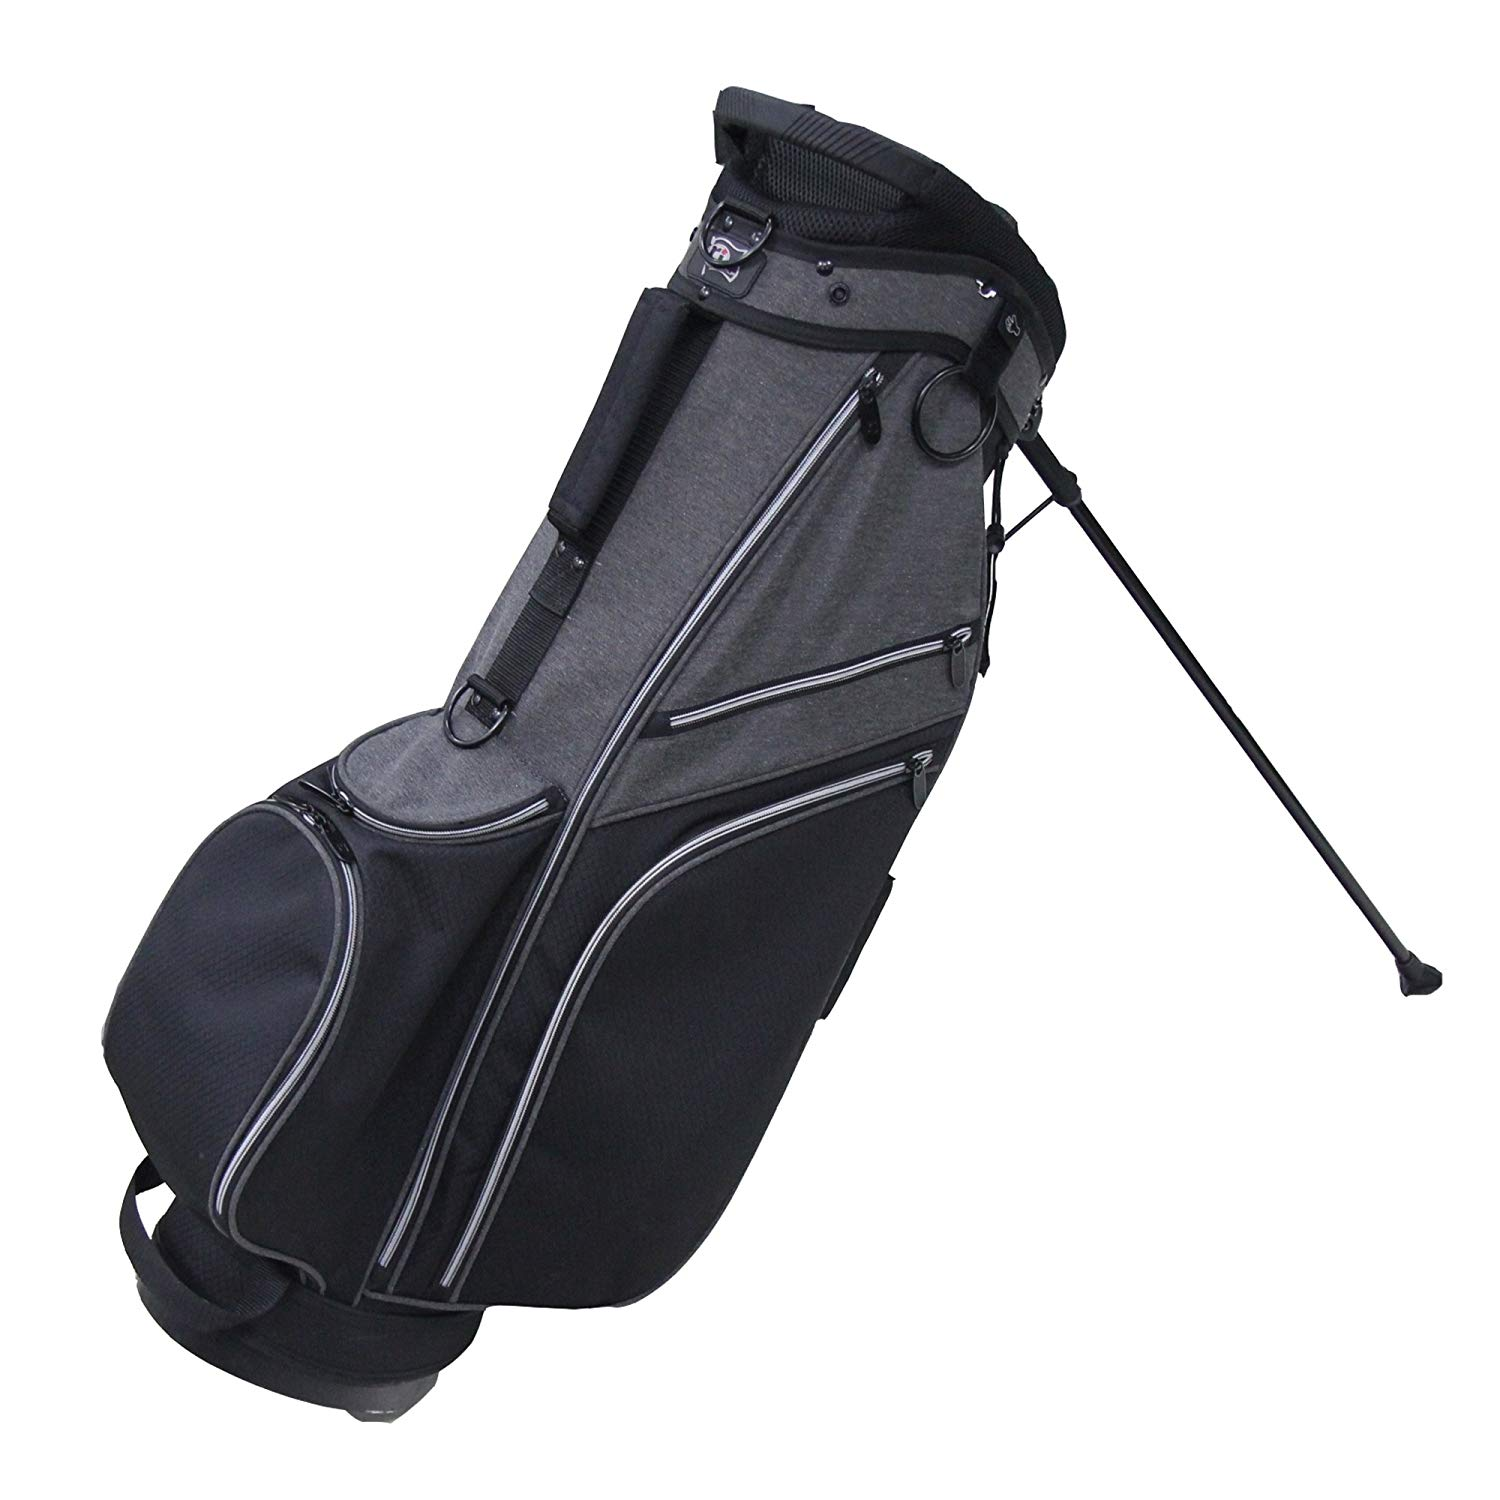 Rj Sports Sd 595 Deluxe Golf Stand Bags